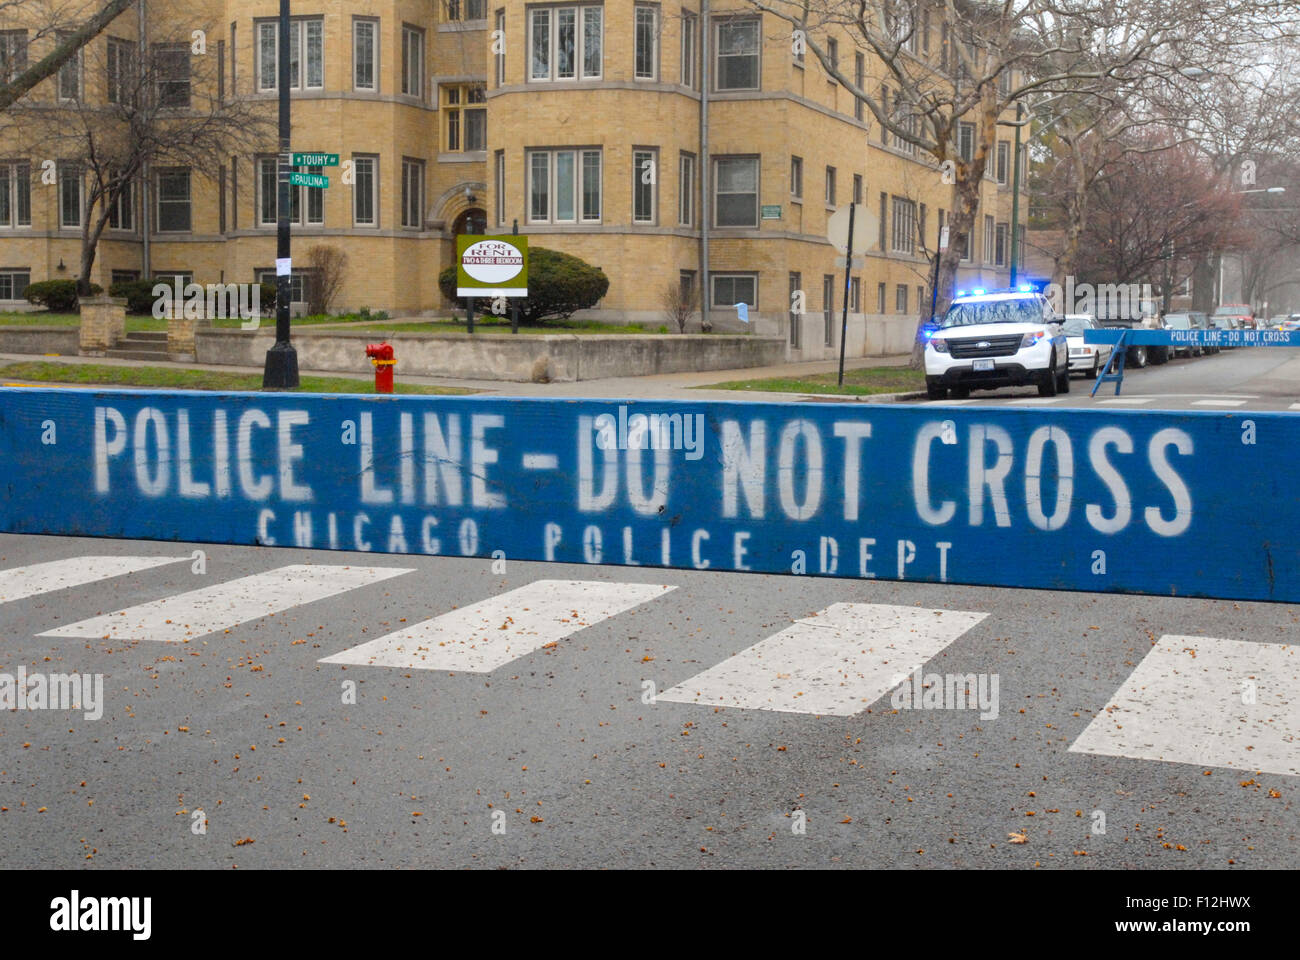 Police line in Chicago - Stock Image